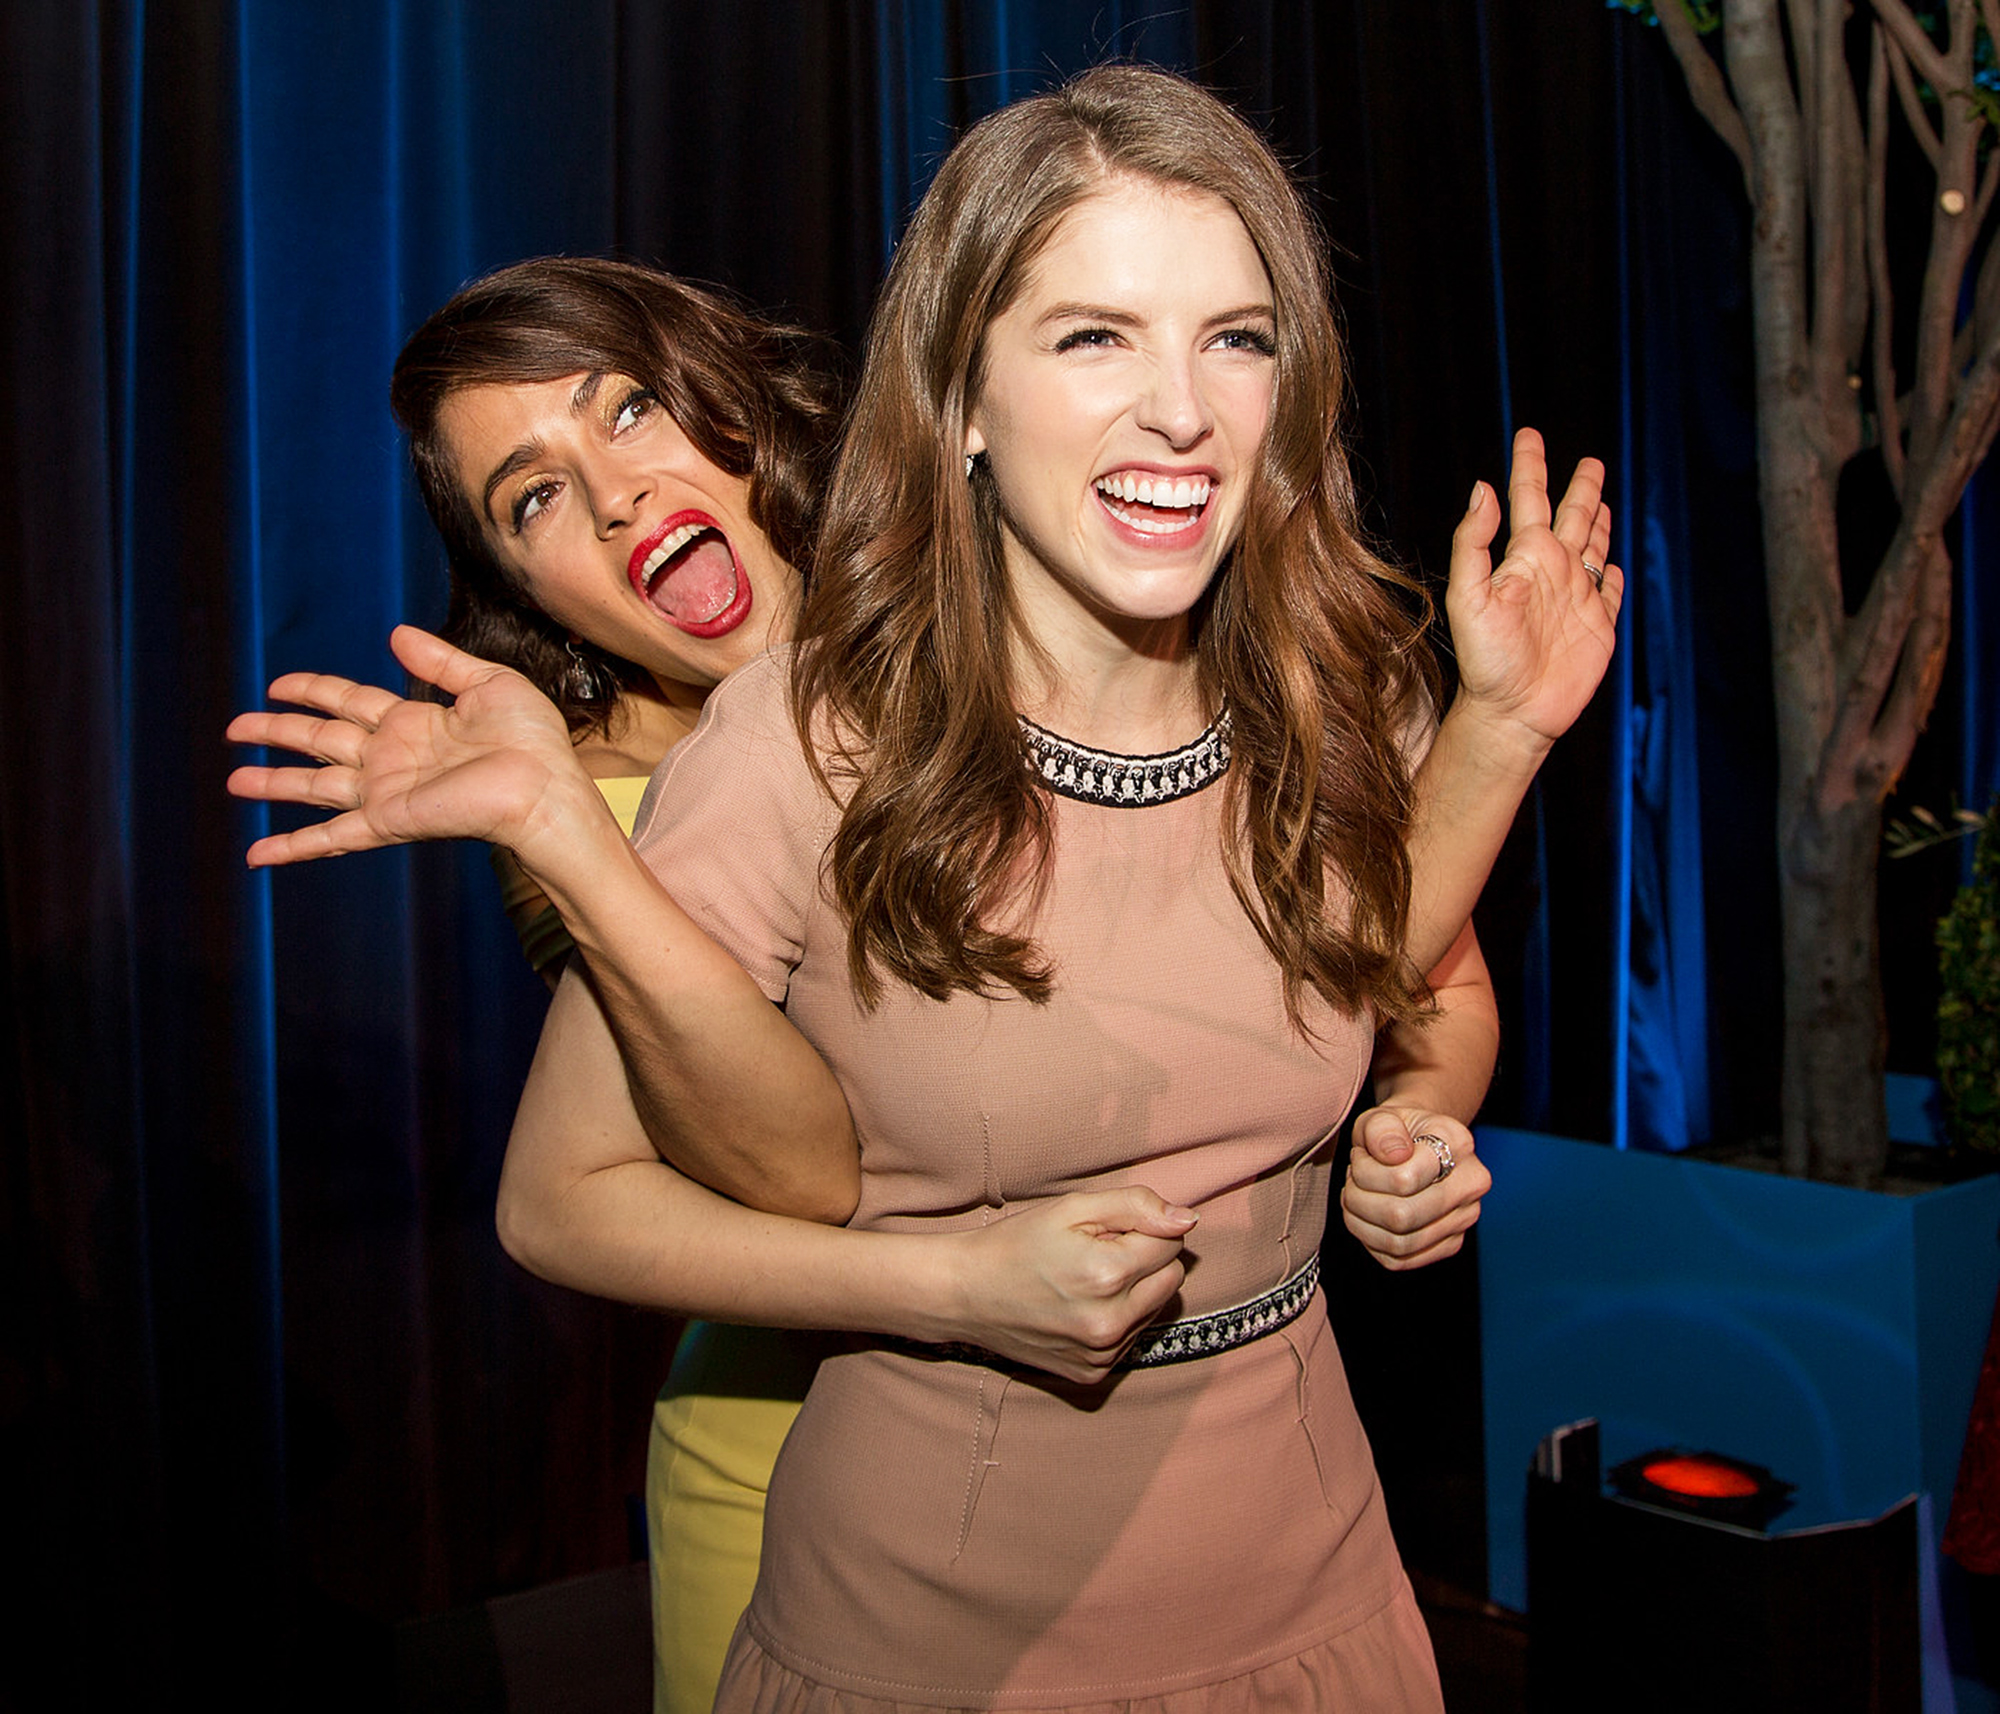 Salma Hayek, Anna Kendrick at Variety's Power of Women in Los Angeles, on Oct. 9, 2015.